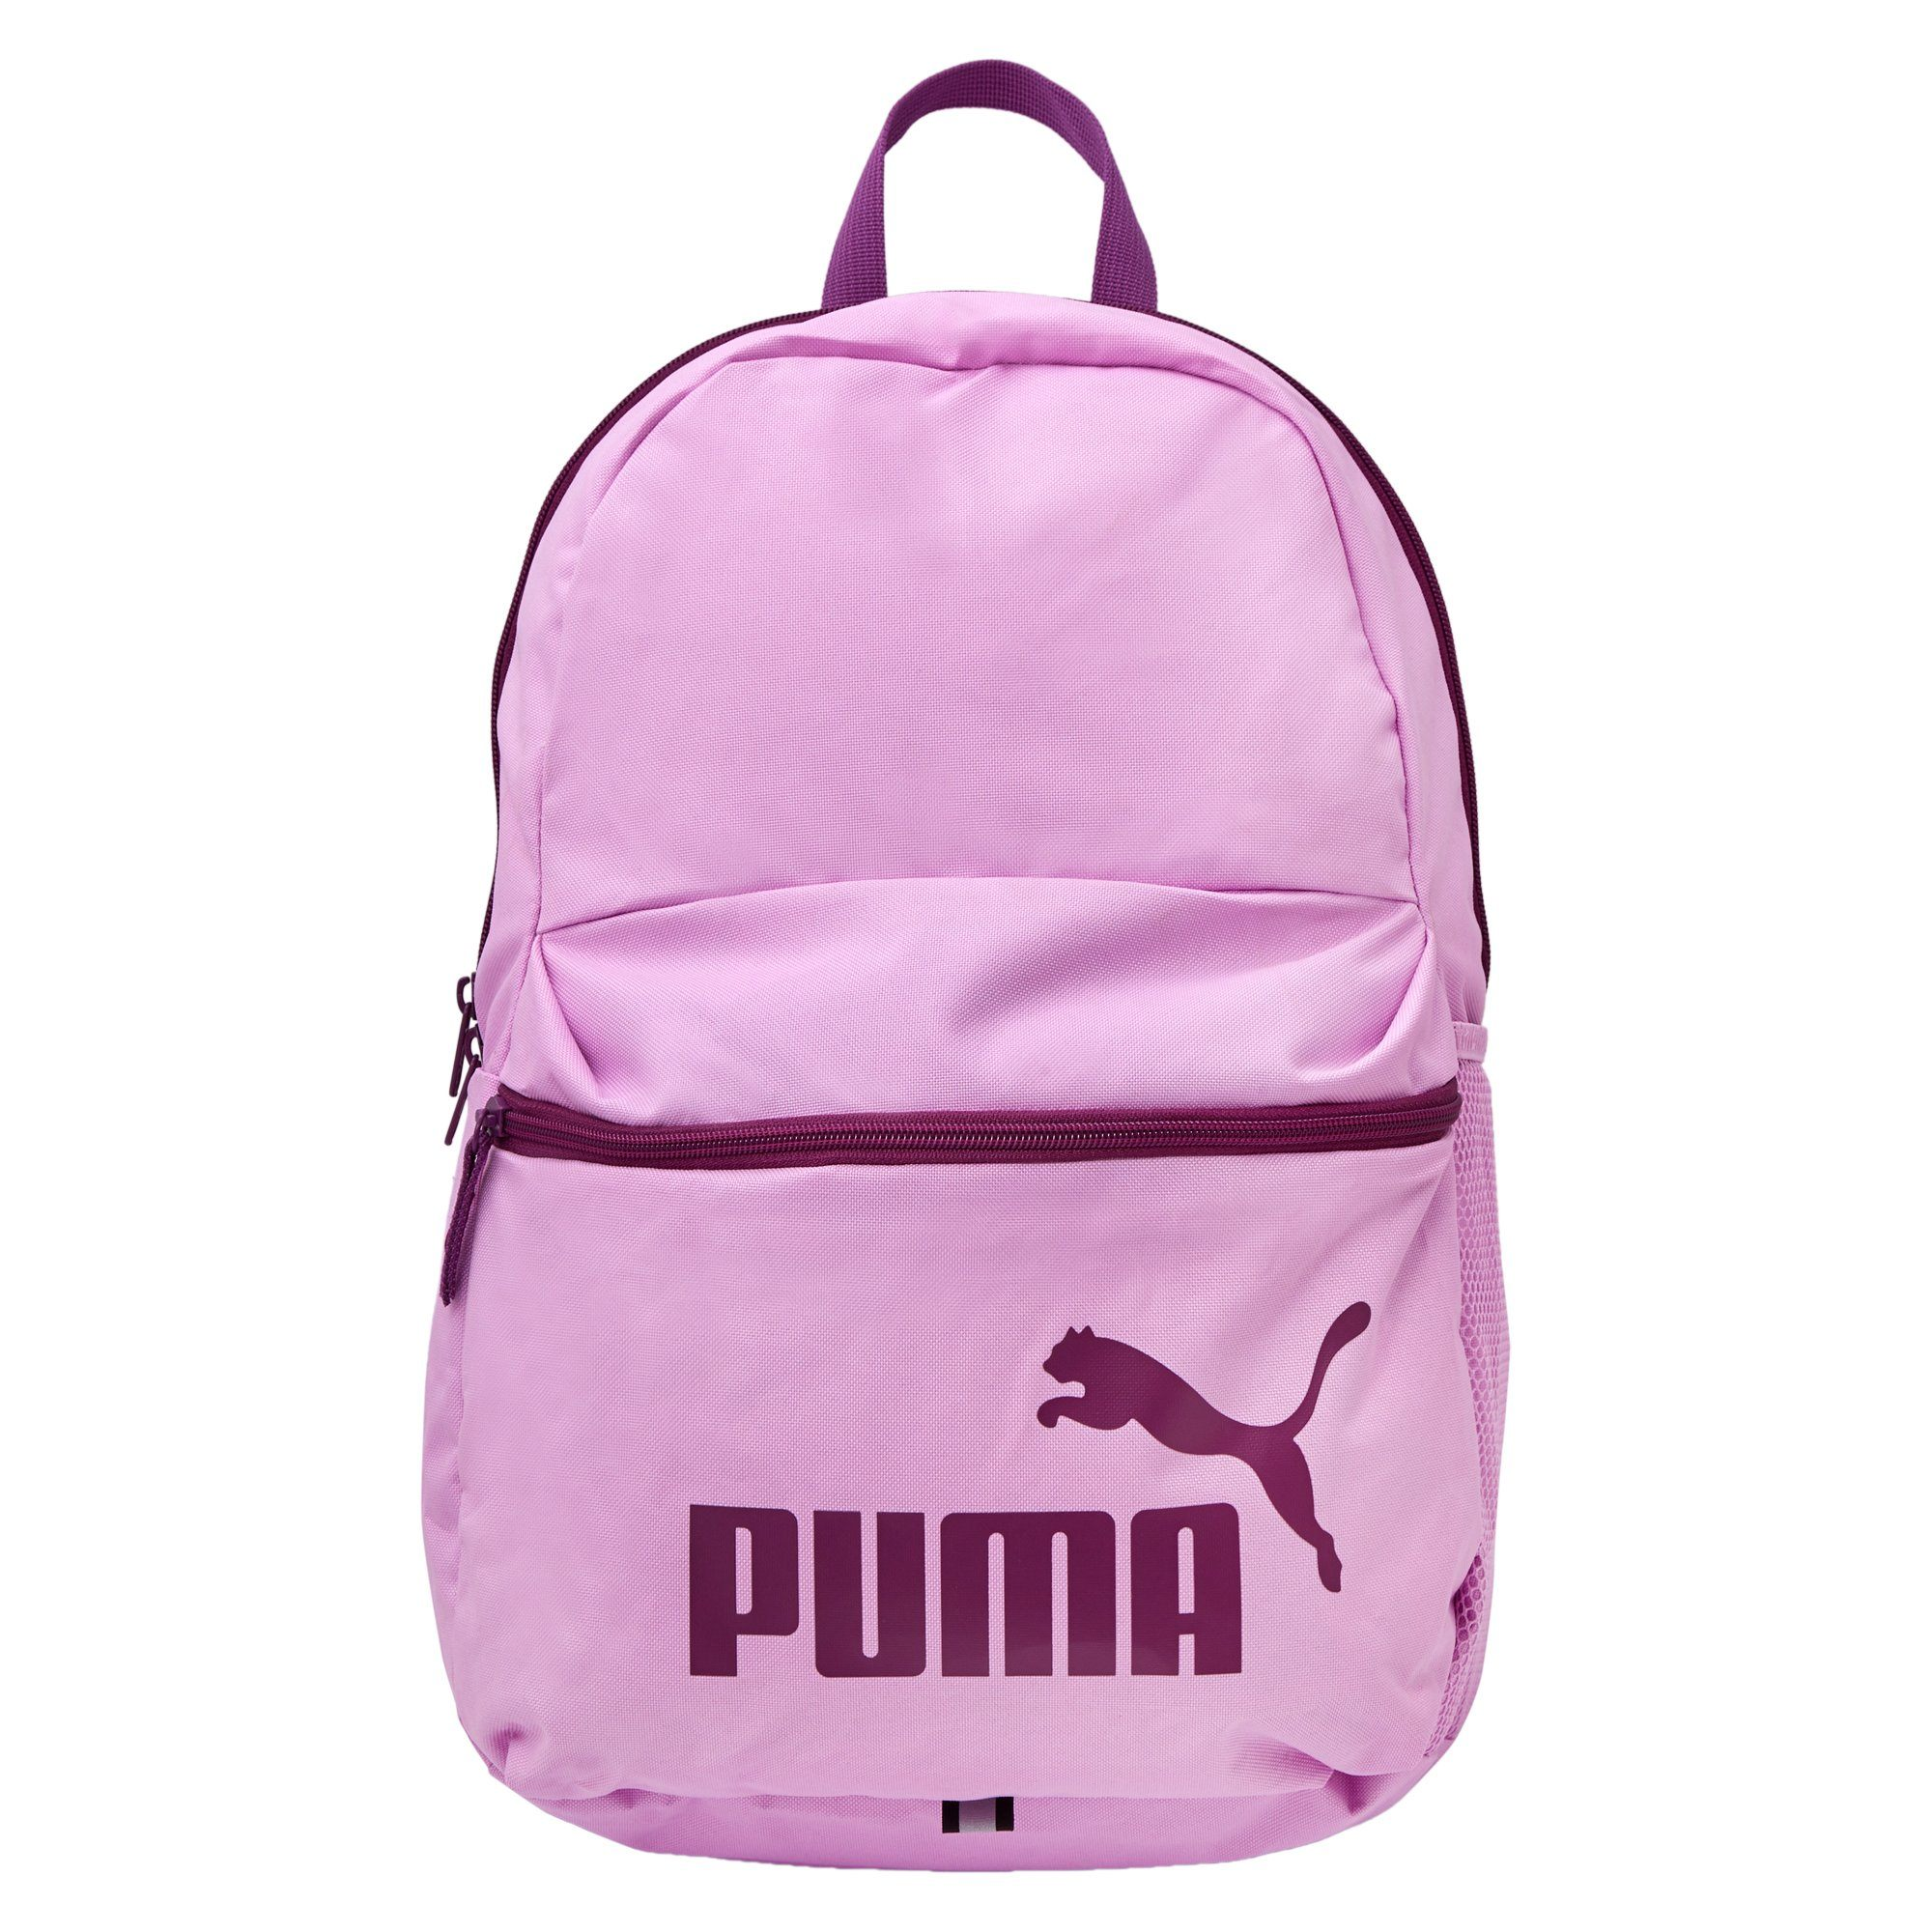 Puma Unisex Phase Backpack - Orchid Accessories Puma